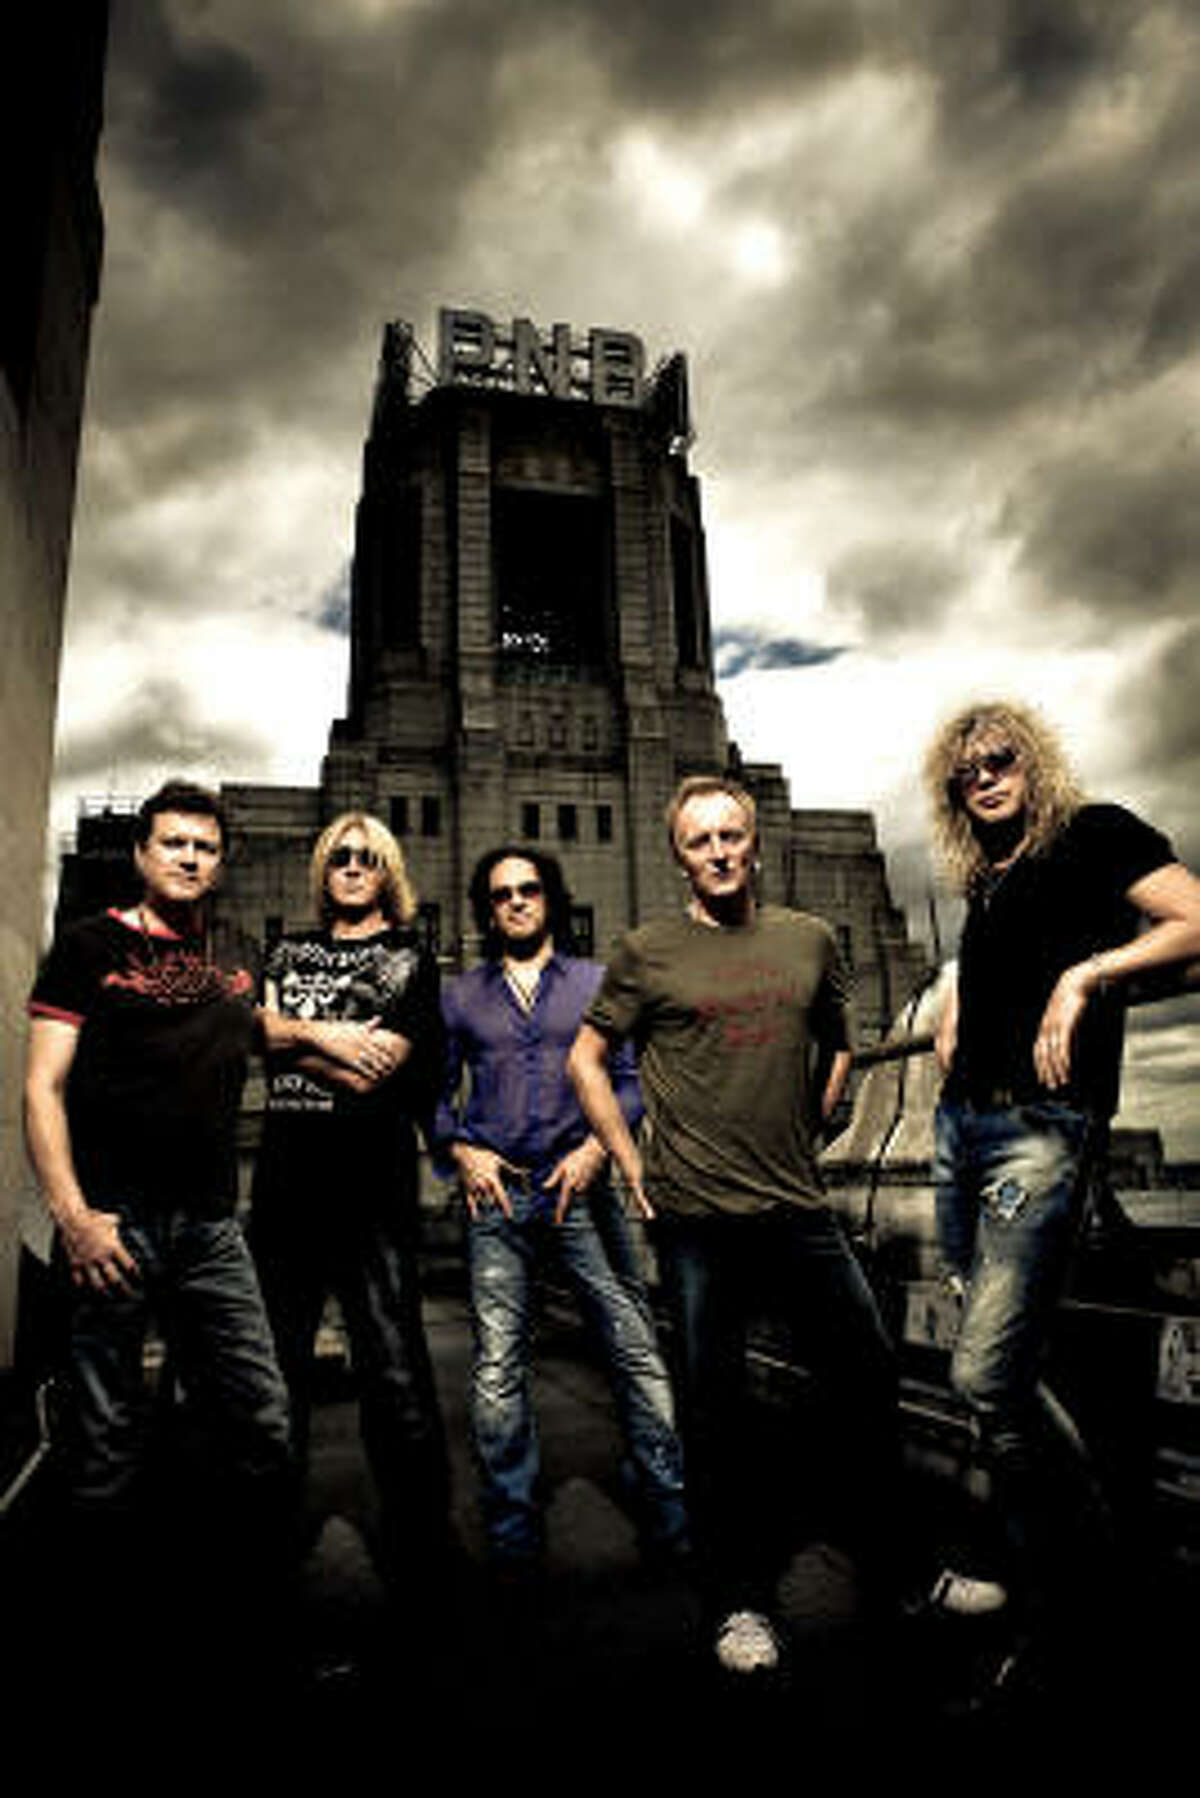 Rock icons Def Leppard have sold more than 65 million albums.